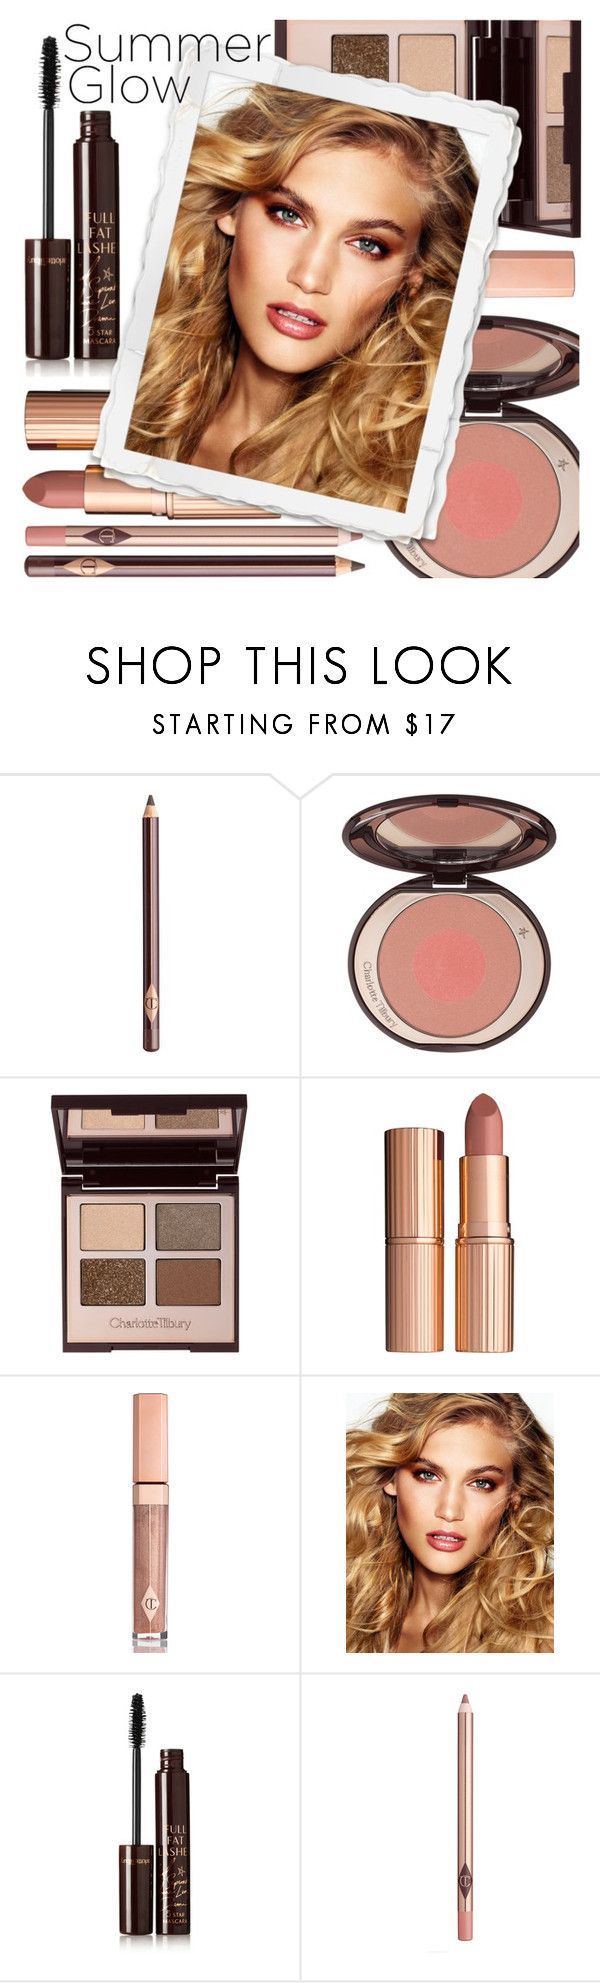 """Glow Up"" by arrow1067 ❤ liked on Polyvore featuring beauty, Charlotte Tilbury and summerglow"